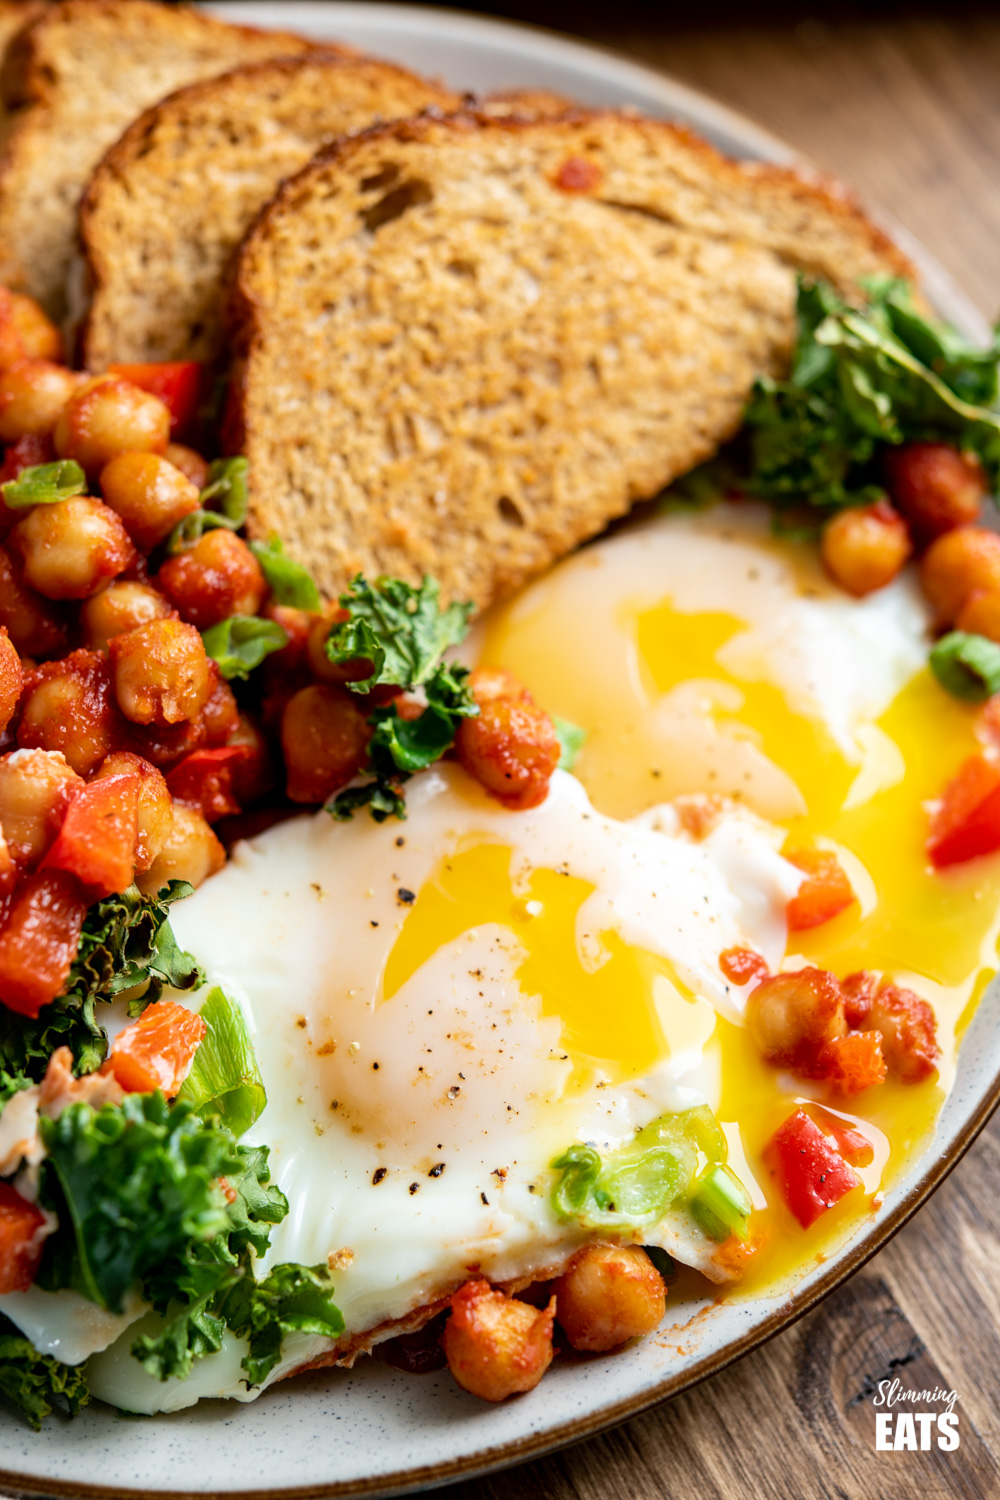 close u of eggs with chickpeas, kale, crispy toast on plate